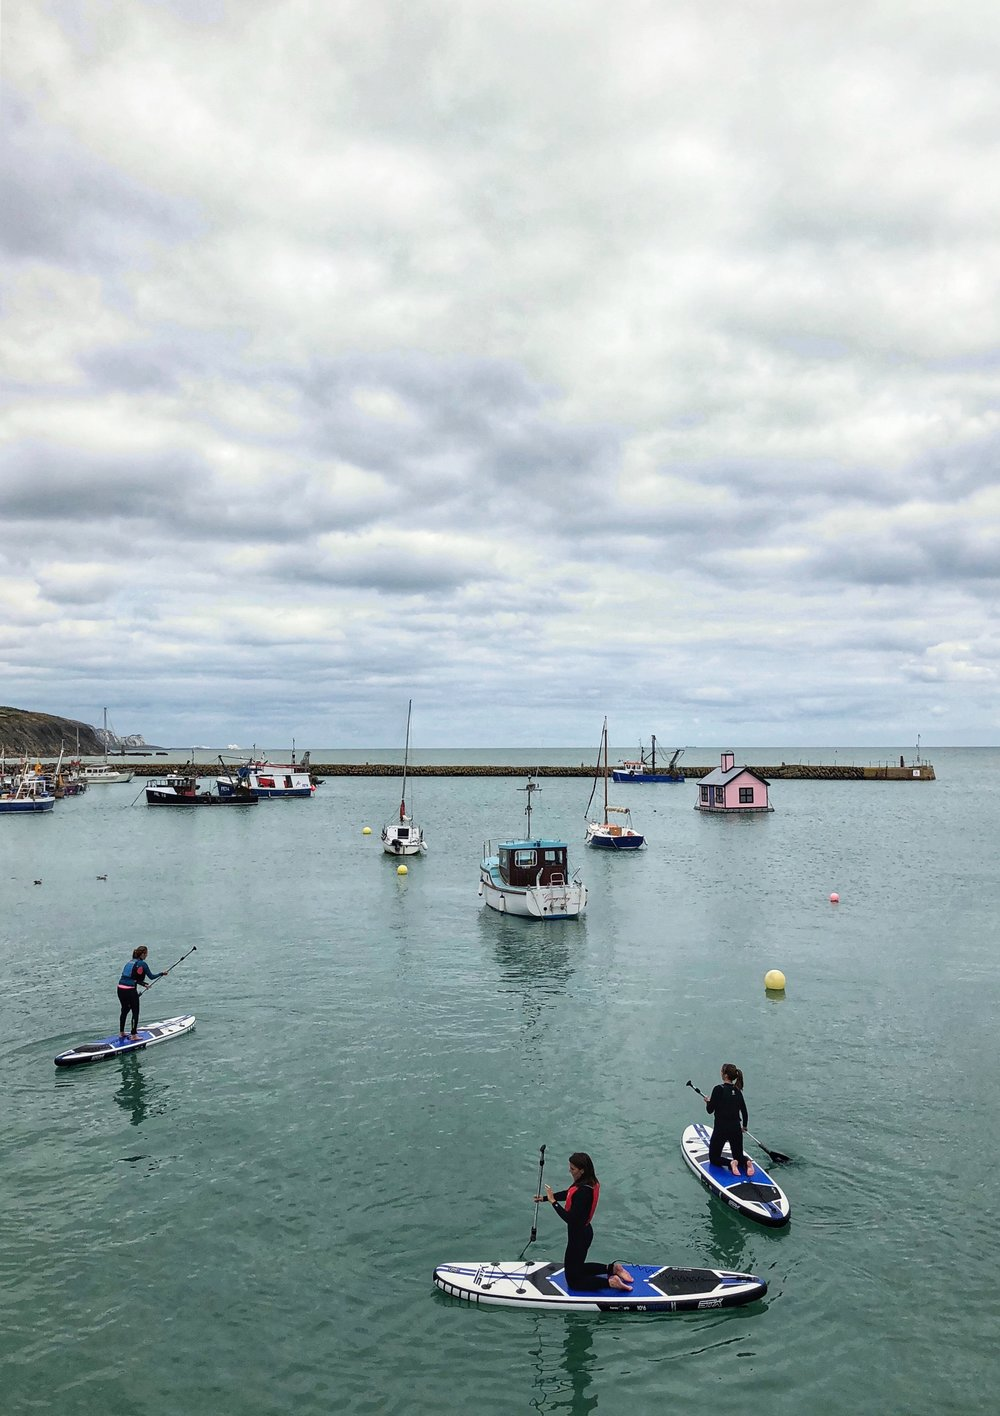 Paddleboarding at the Harbour, Folkestone by Clementine May.JPG